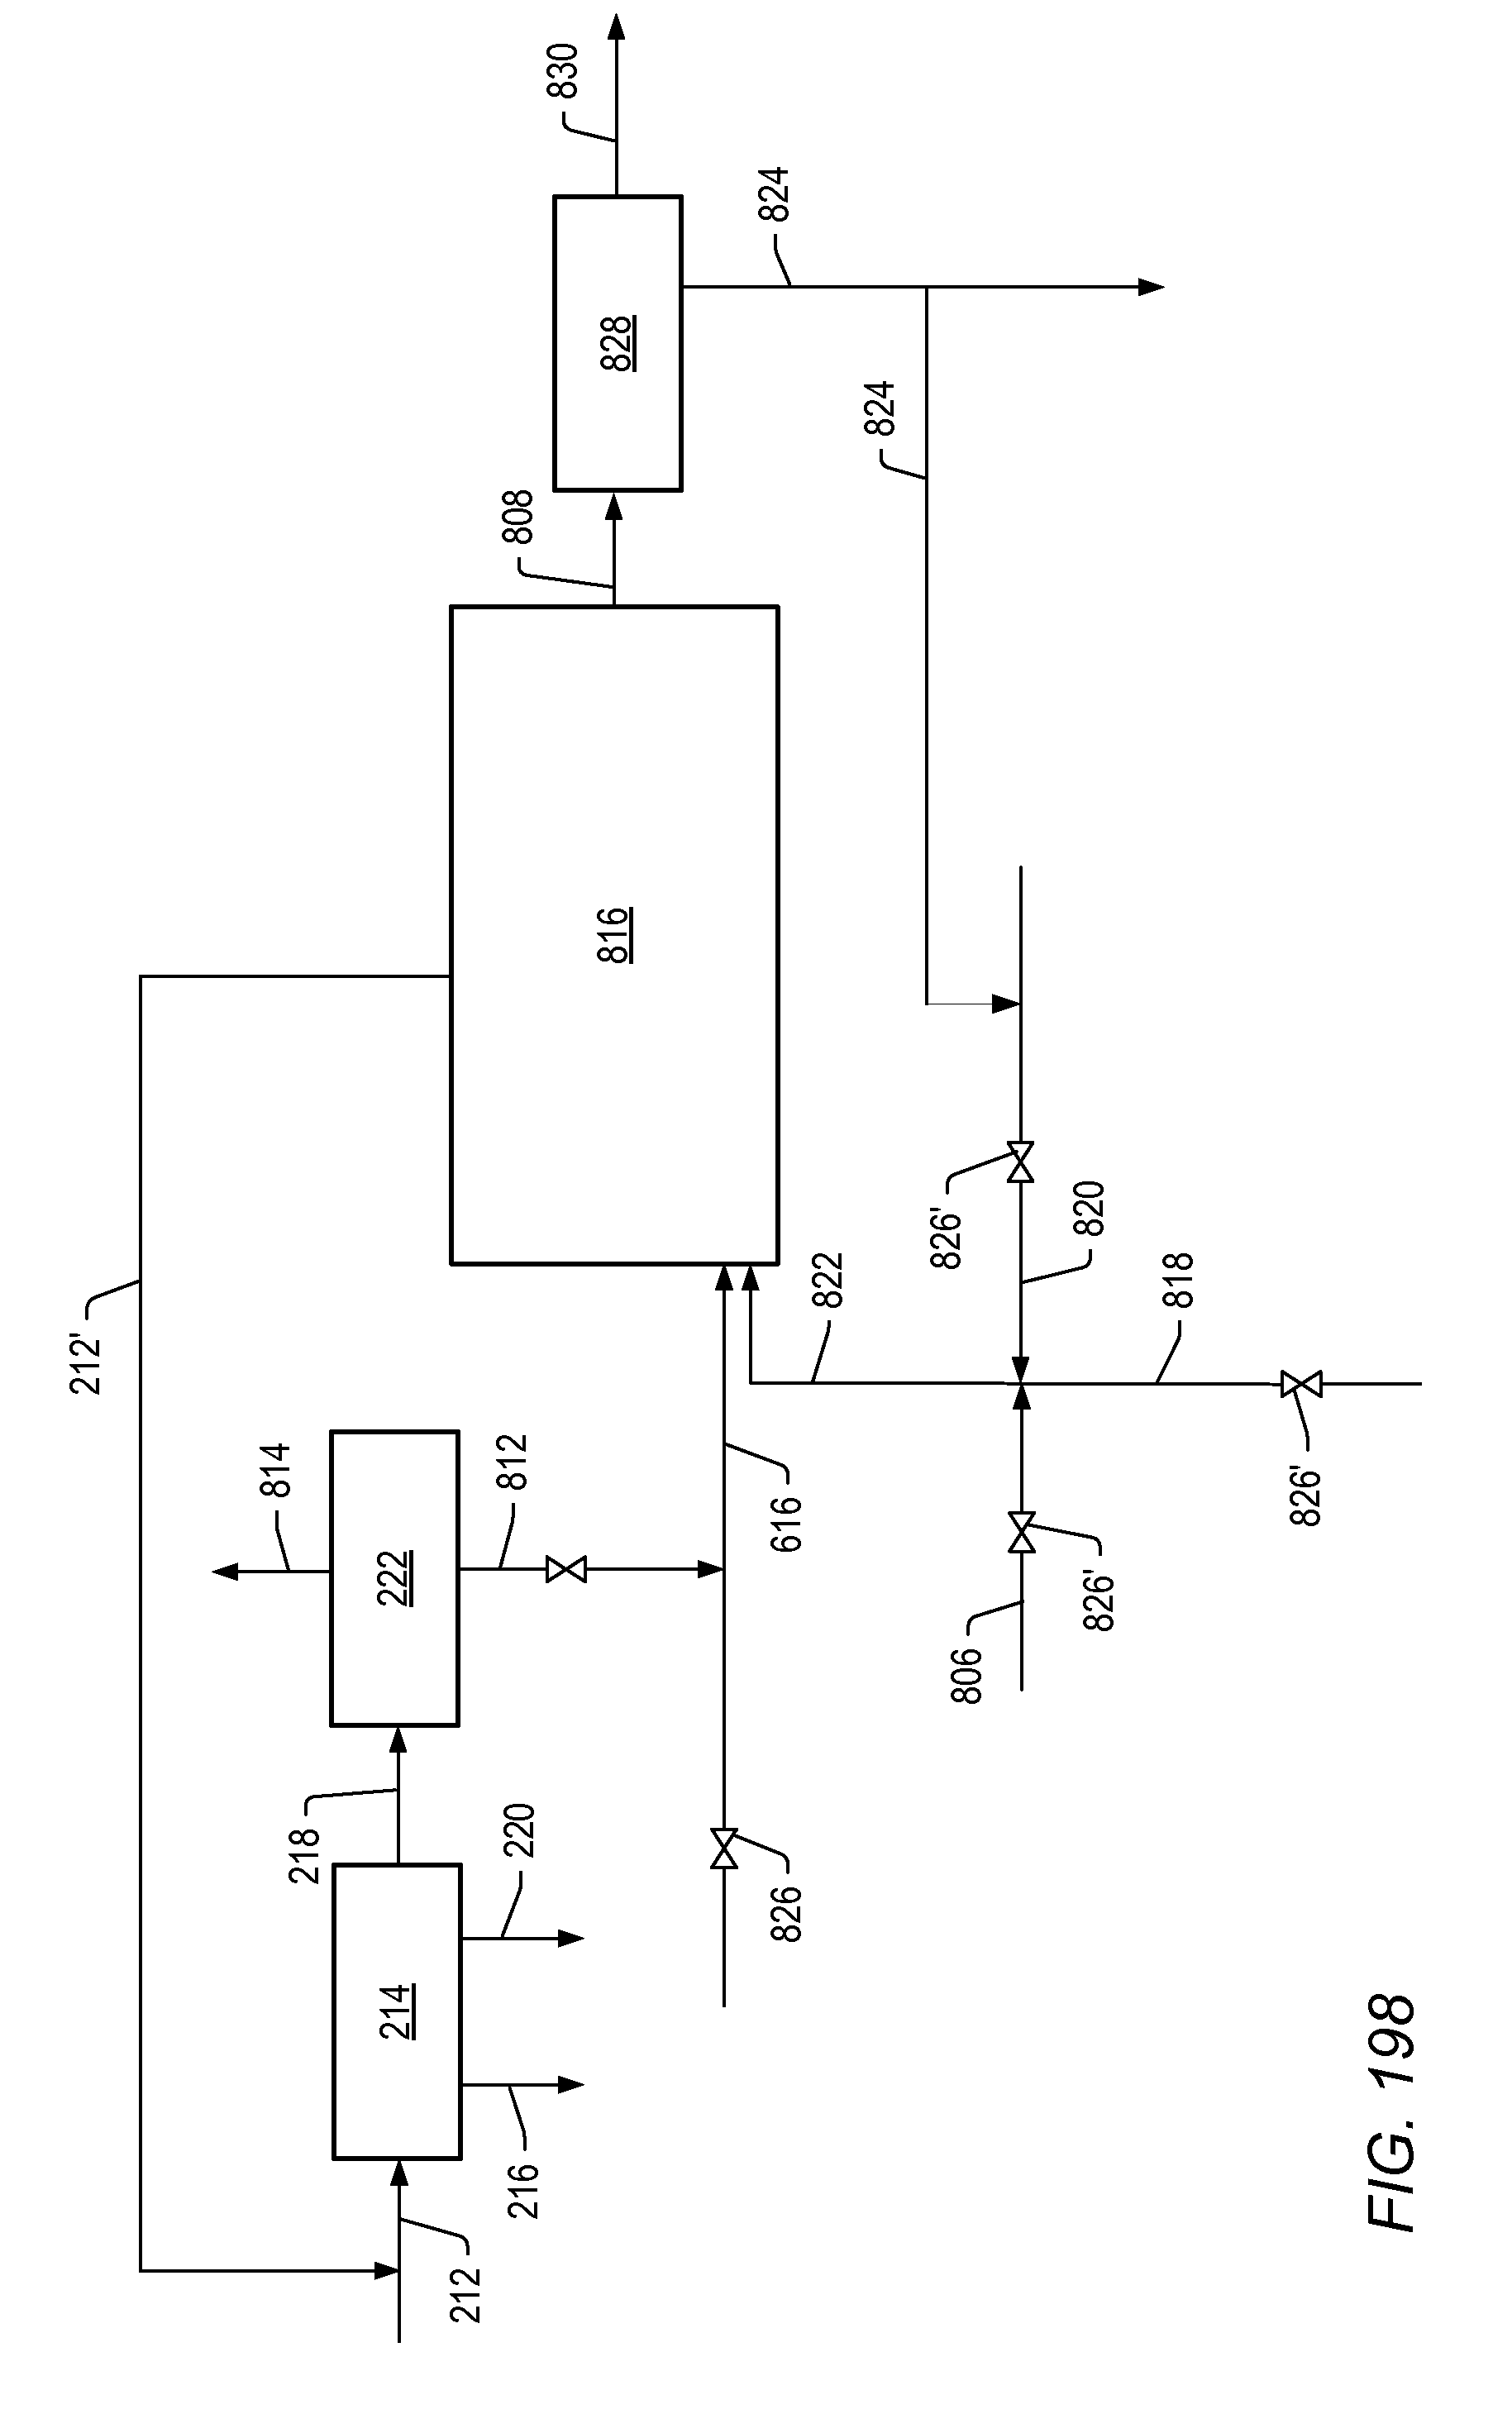 fig 714 circuit diagram of anautomatic stardelta contactor circuitpatent us 8 011 451 b2 rh insight rpxcorp com